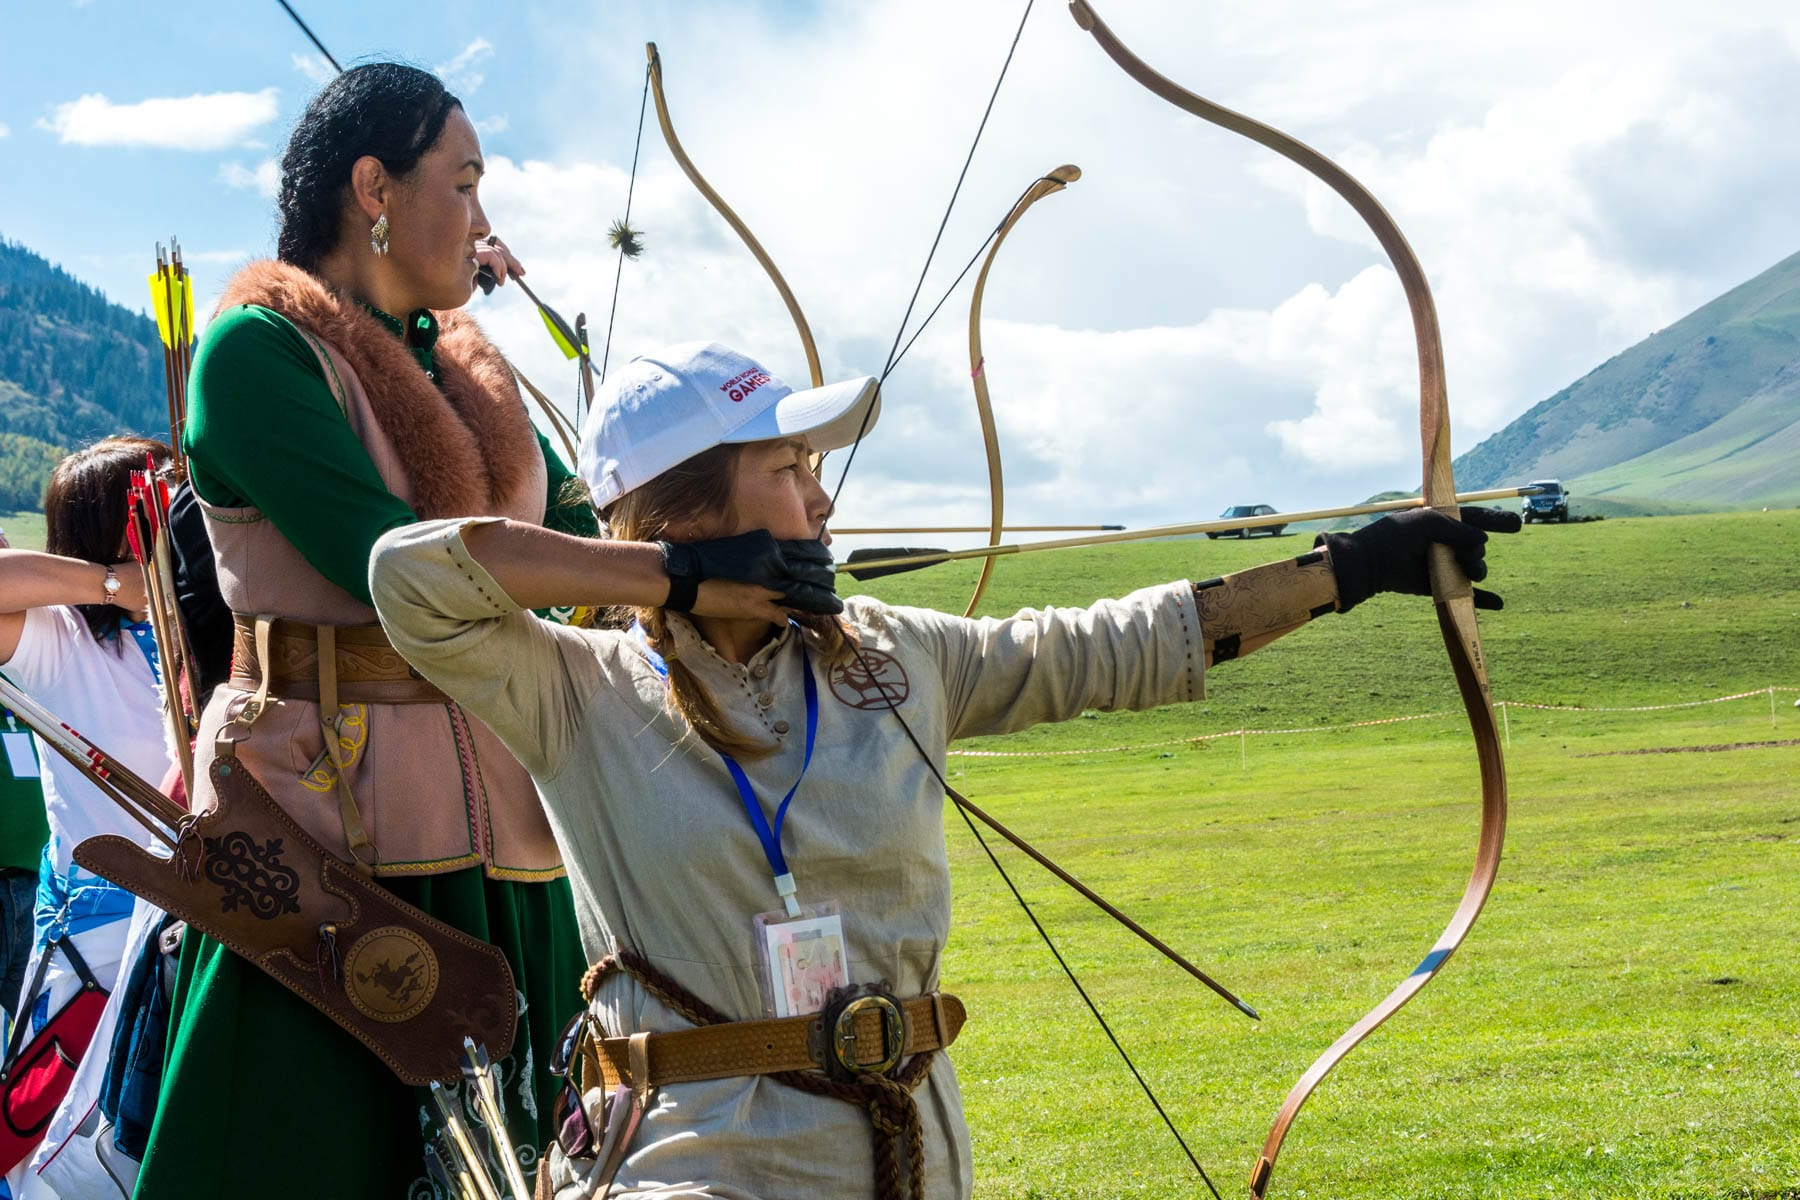 Women doing archery at the World Nomad Games in 2016 - Lost With Purpose